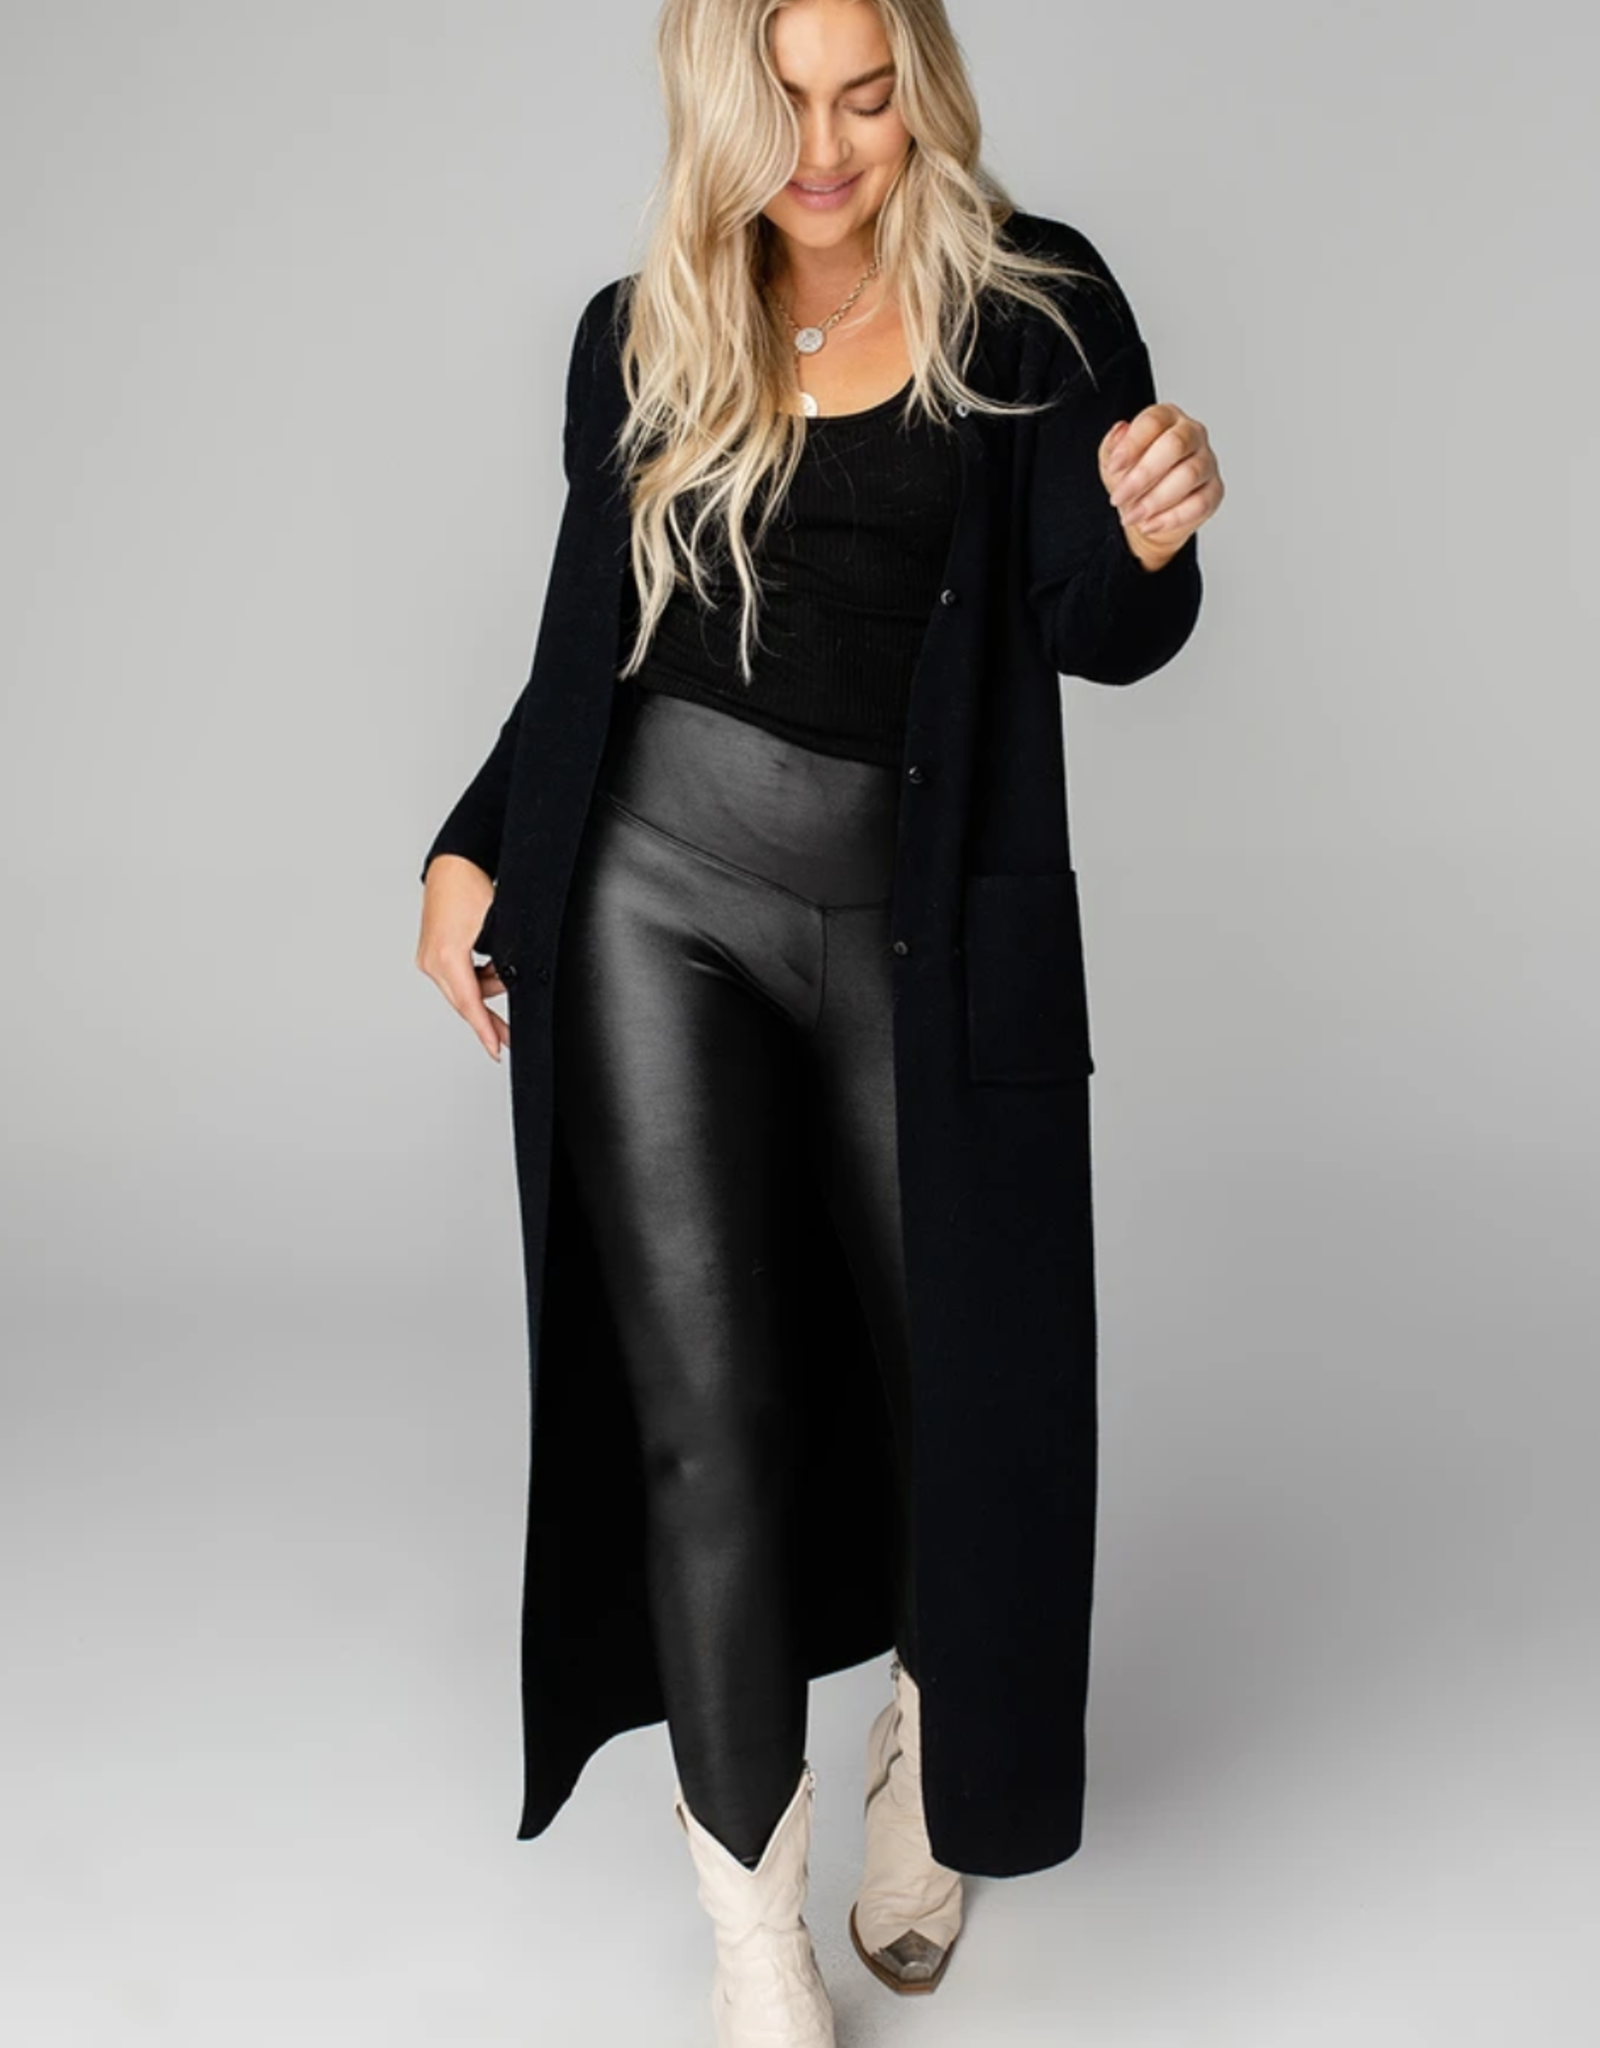 Buddy Love Claire Long Cardigan